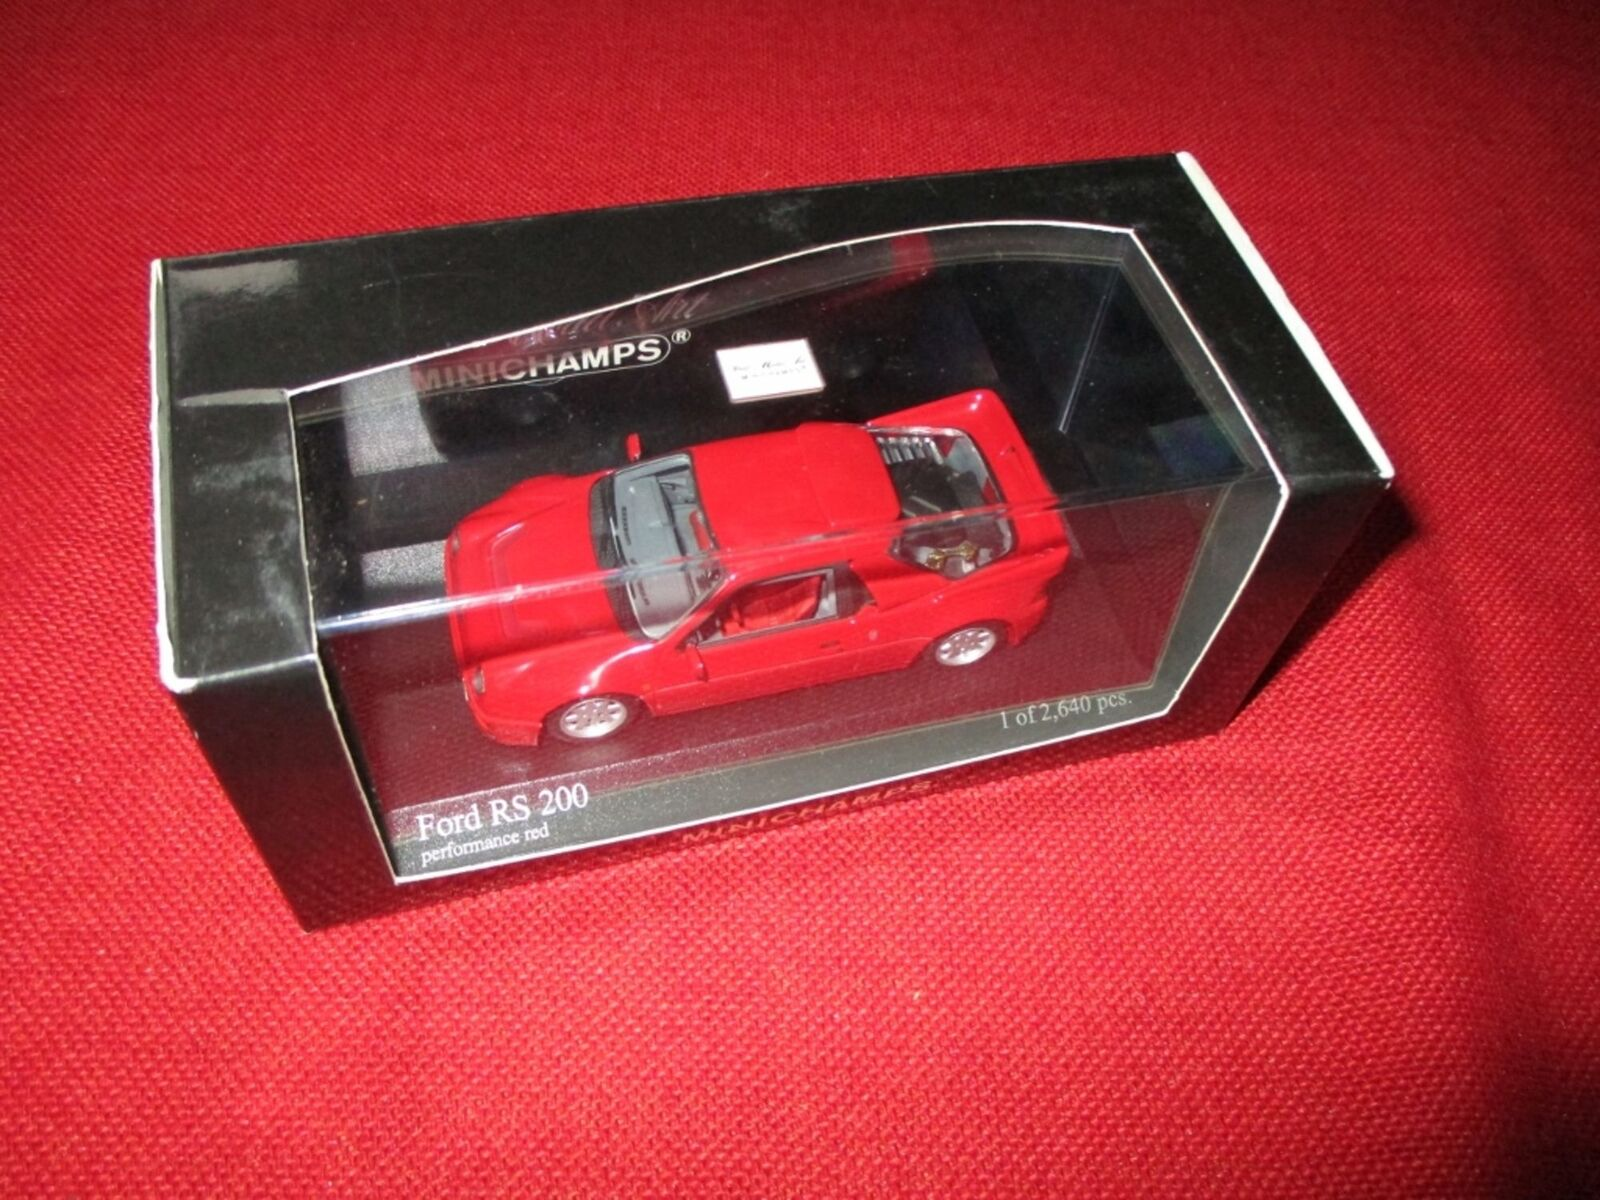 MINICHAMPS® 430 080201 1 43 Ford RS 200 1986 1986 1986 red NEU OVP eee343